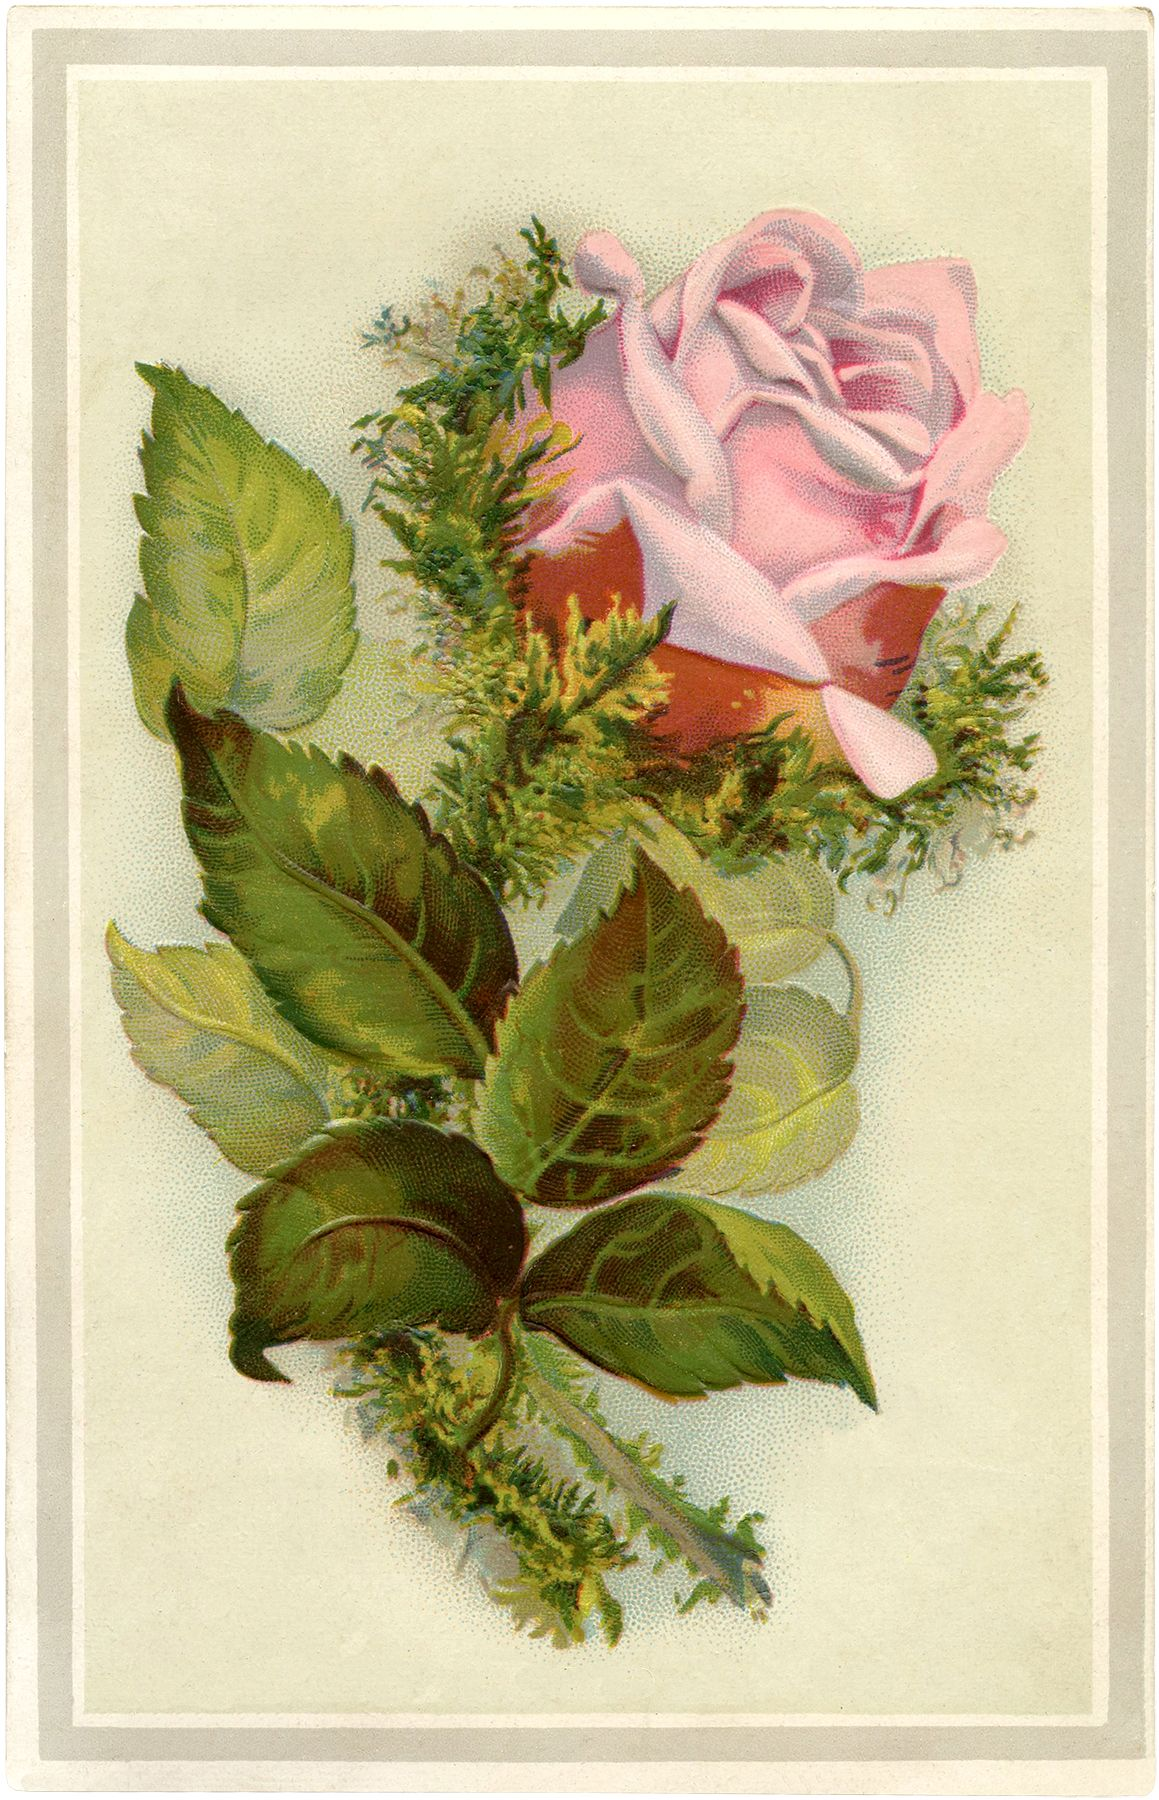 Gorgeous Vintage Pink Moss Rose Image Smell The Roses Other